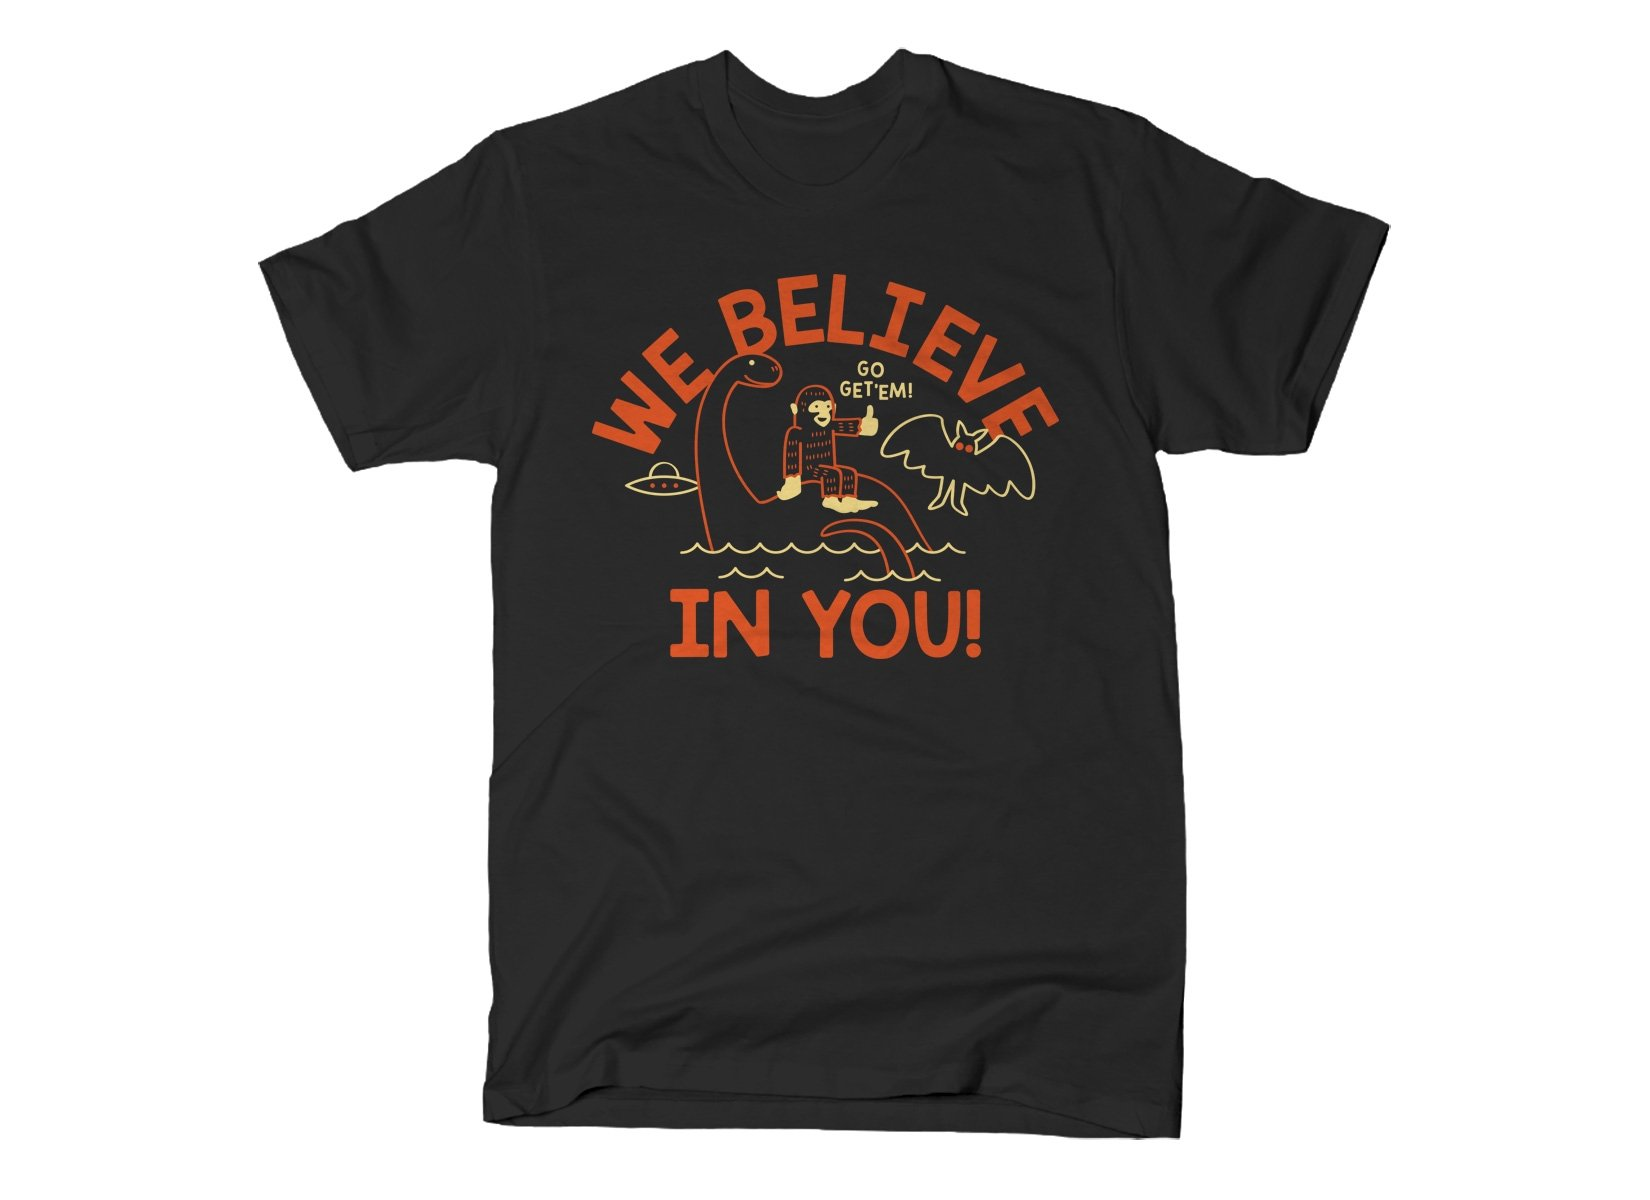 We Believe In You! on Mens T-Shirt